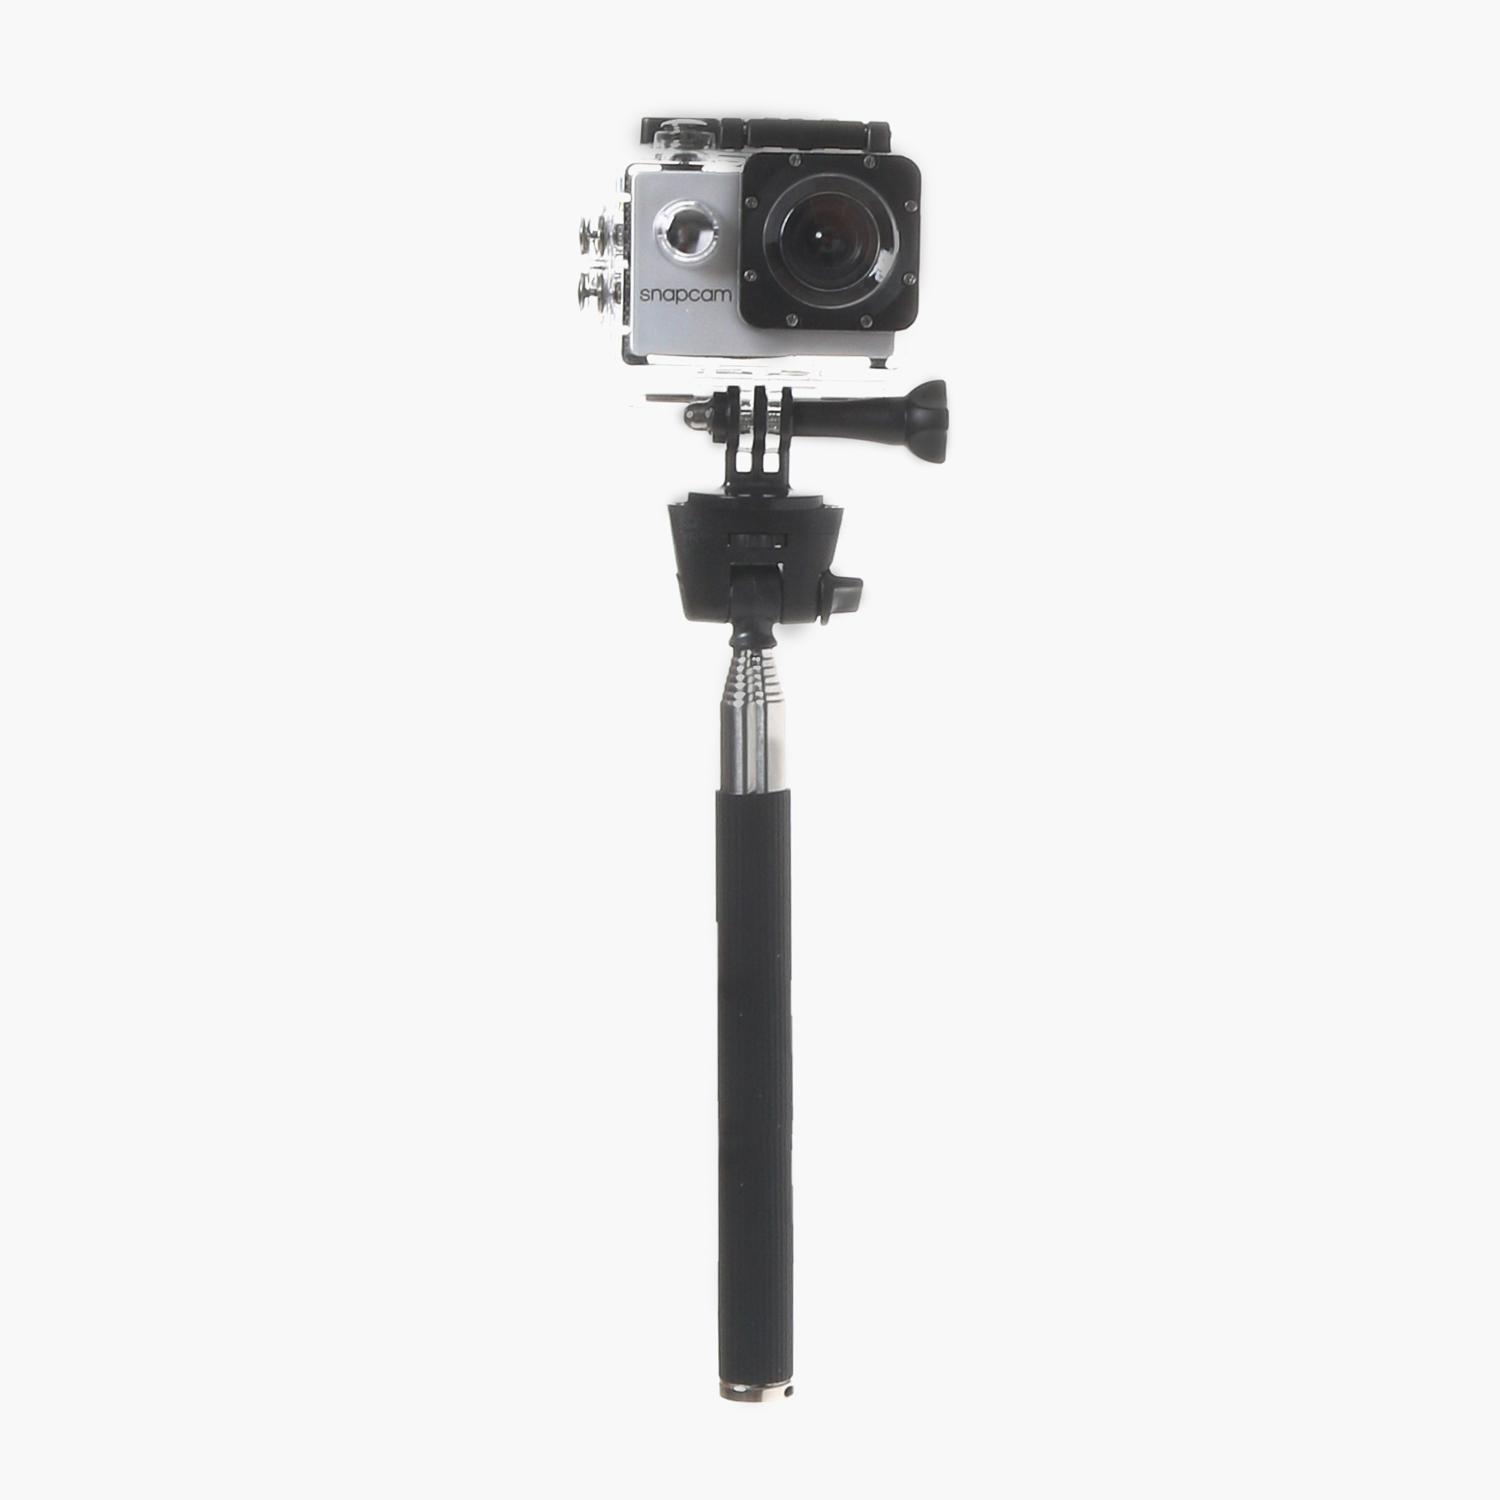 Snap Cam Camera With Waterproof Case And Monopod (silver) By The Sm Store.